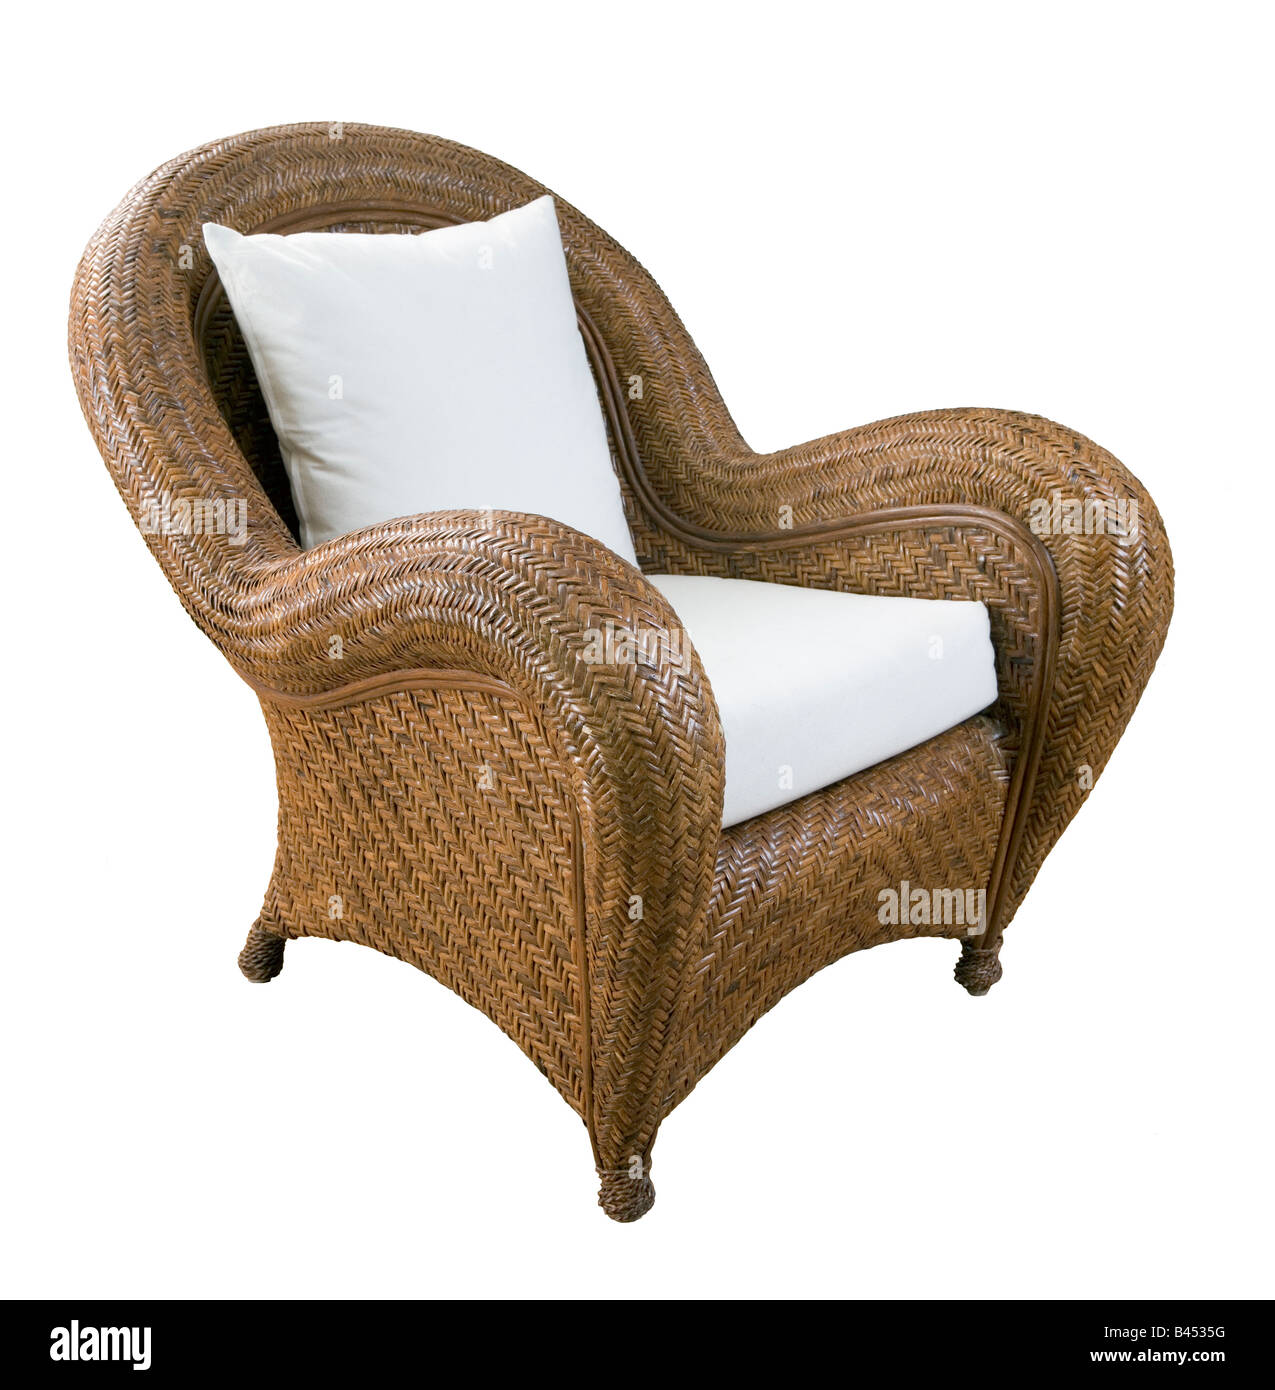 Wicker Chair Using Outdoor Wicker Chairs Wicker Chair I Just Found A Chair Almost Just Like